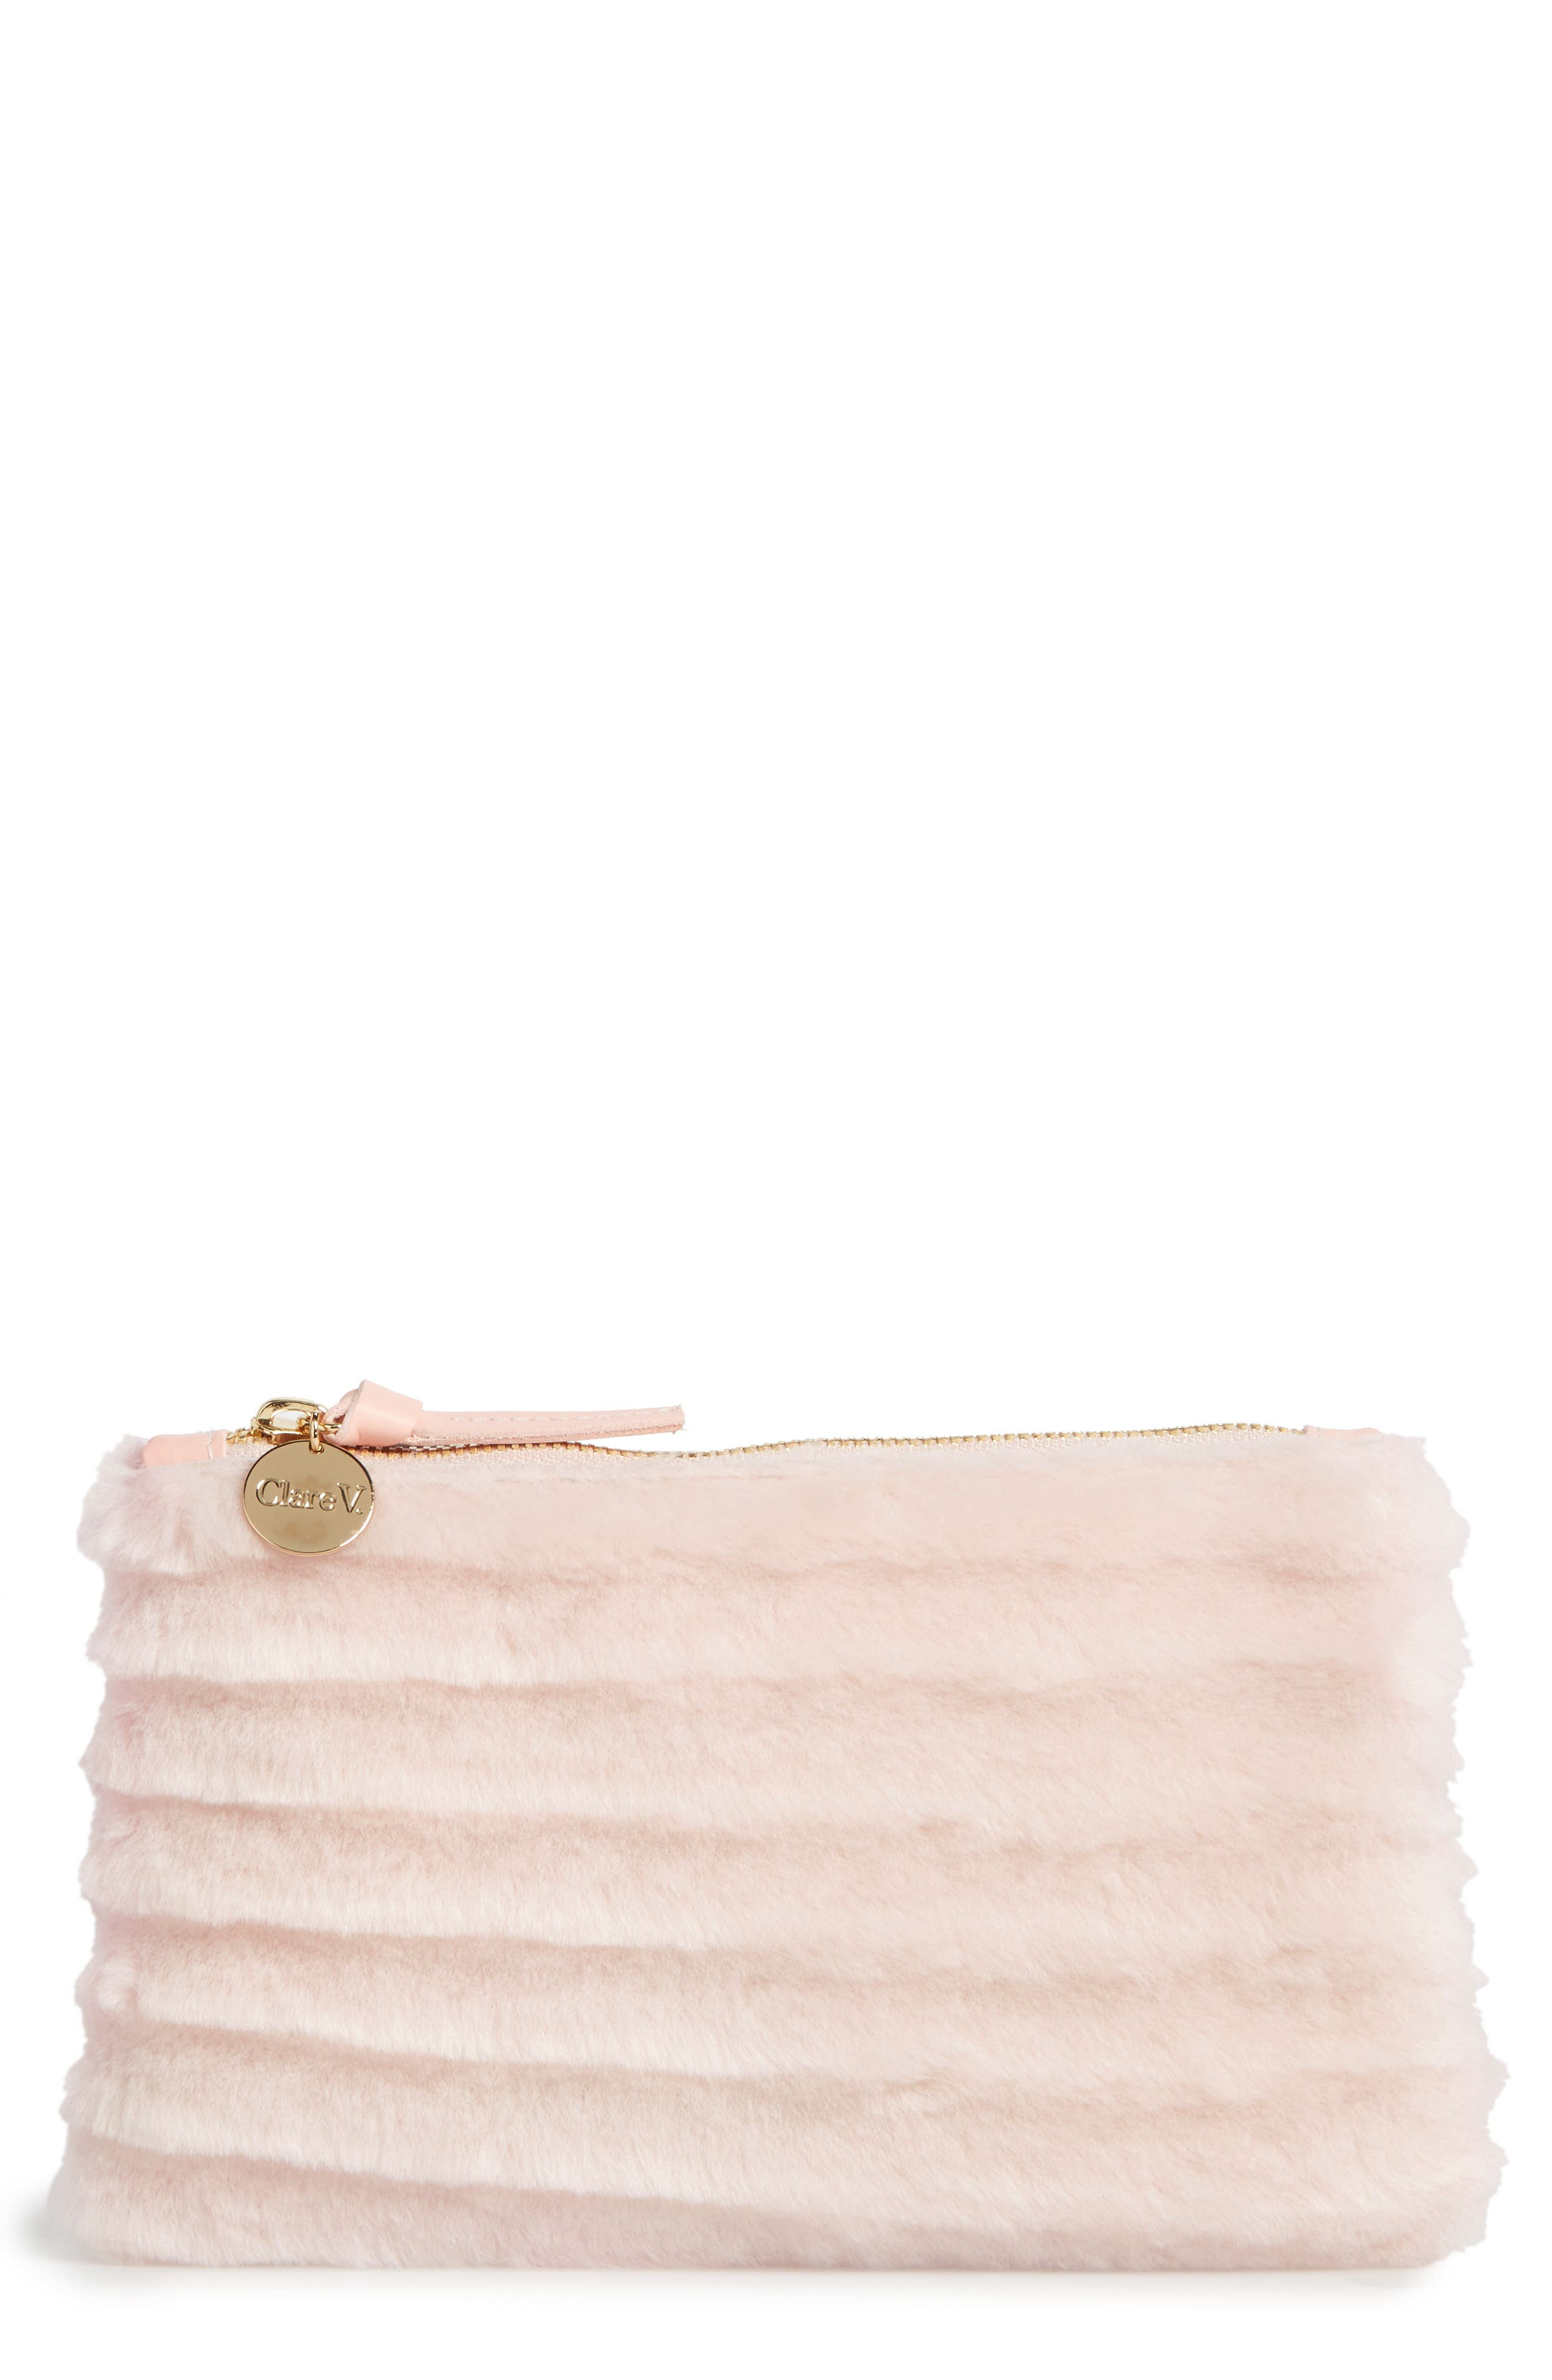 Main Image - Clare V. Genuine Shearling Pouch